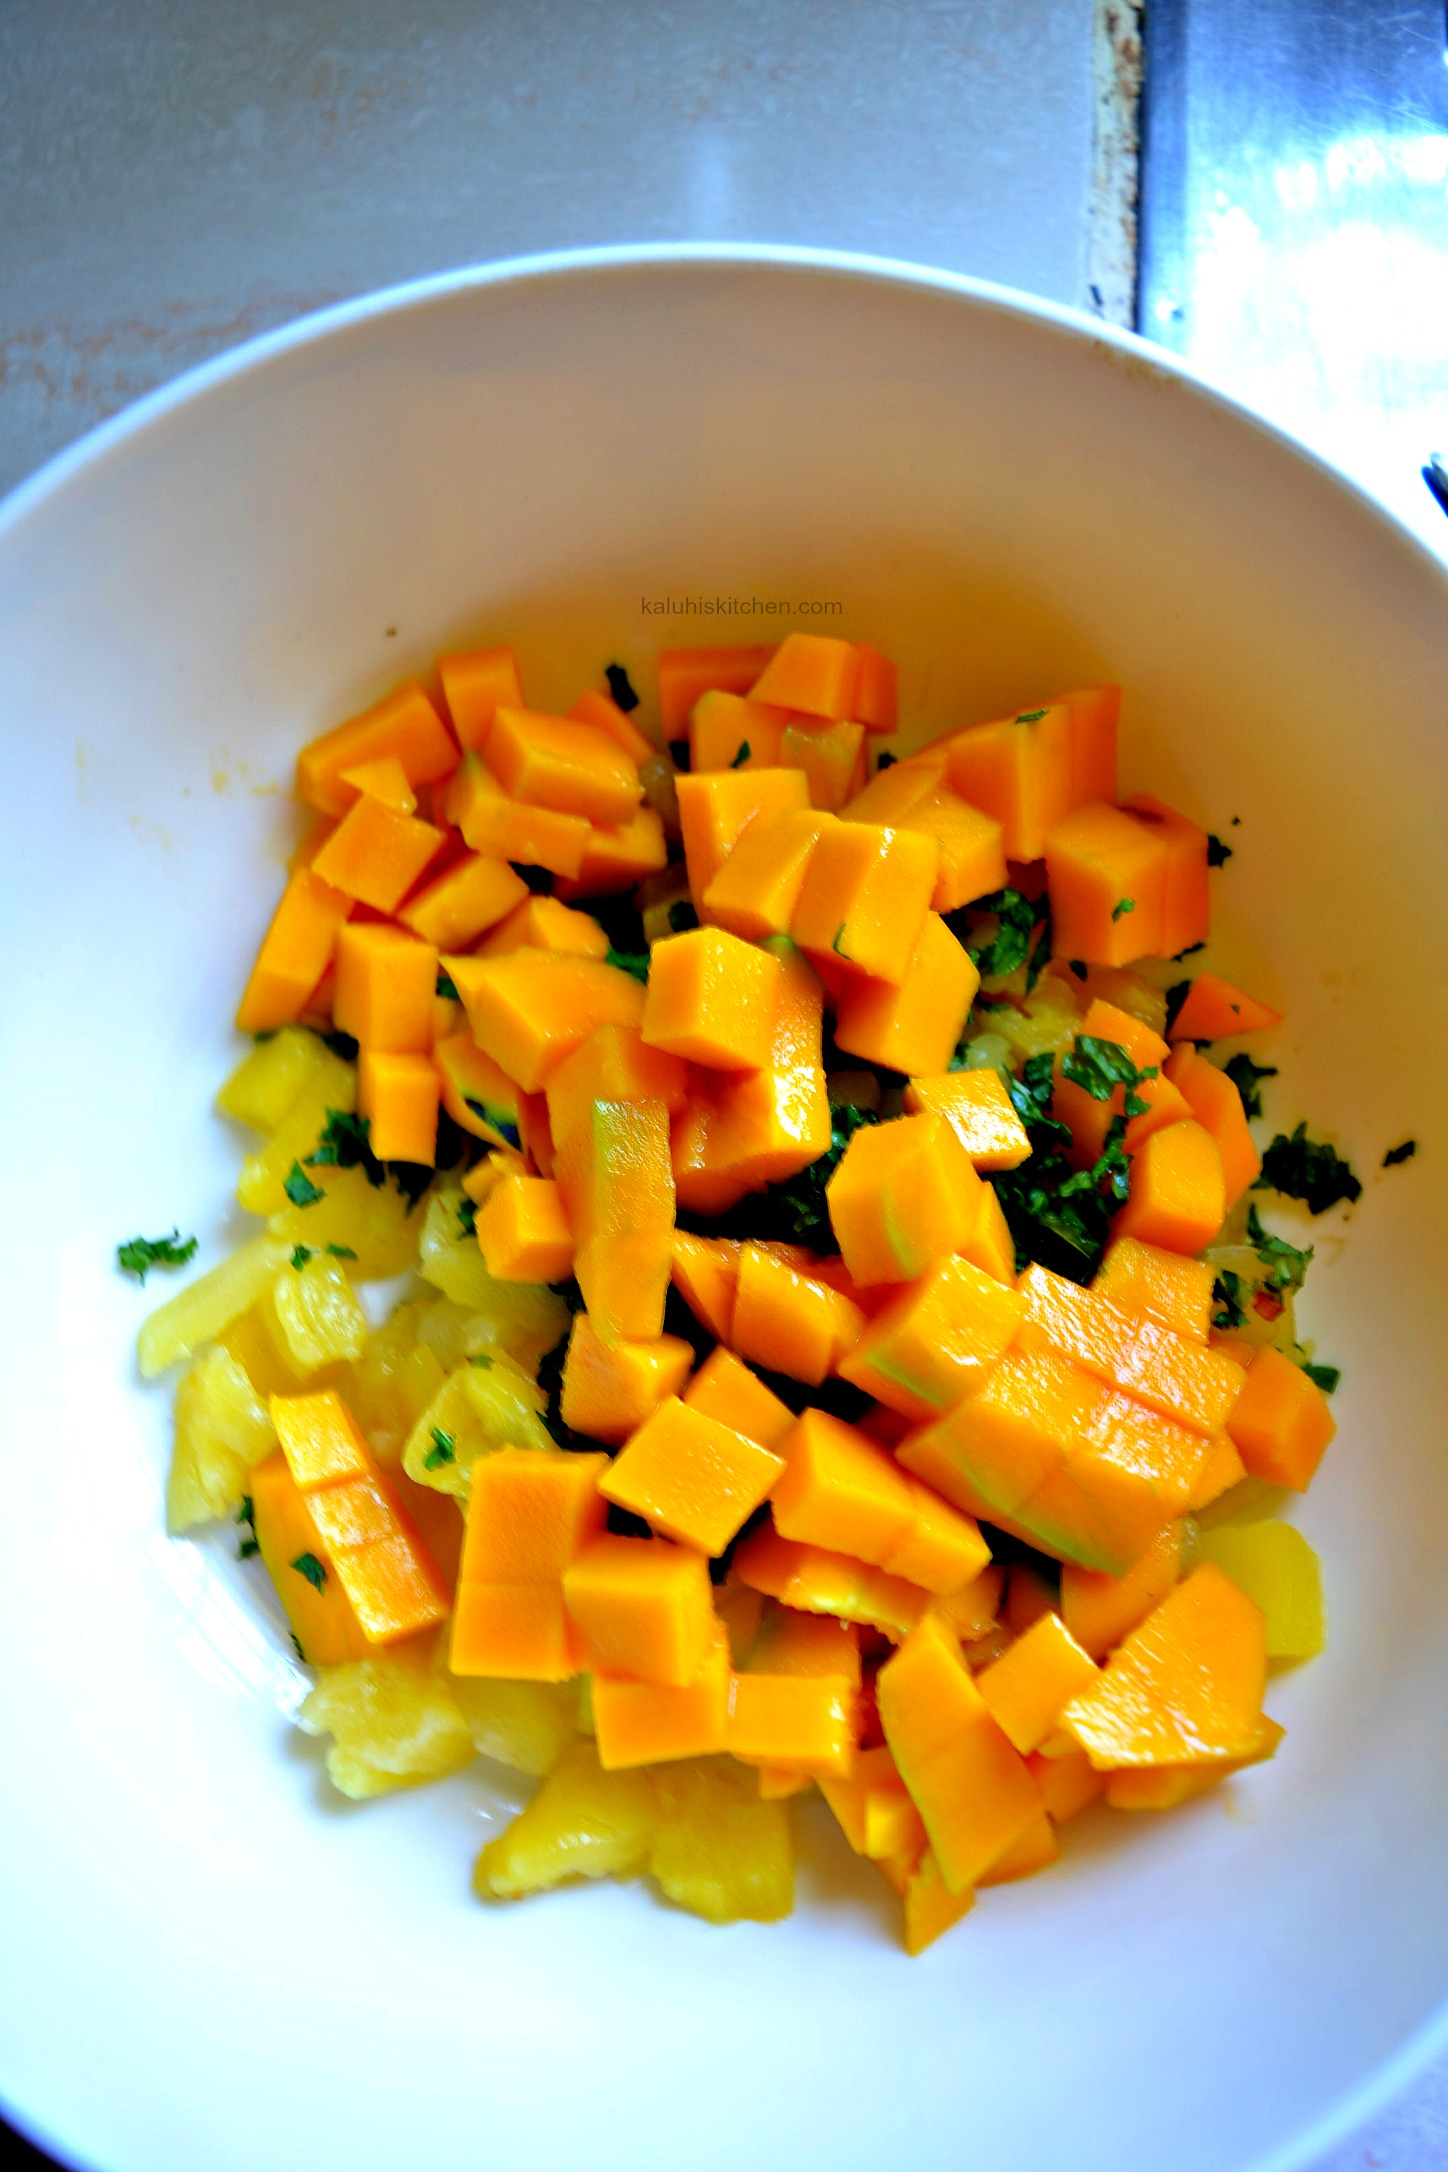 ad the mango nad mix it in with the pineapple and mint and allow it to sit for a while_mango mint salad_how to make mango mint salad